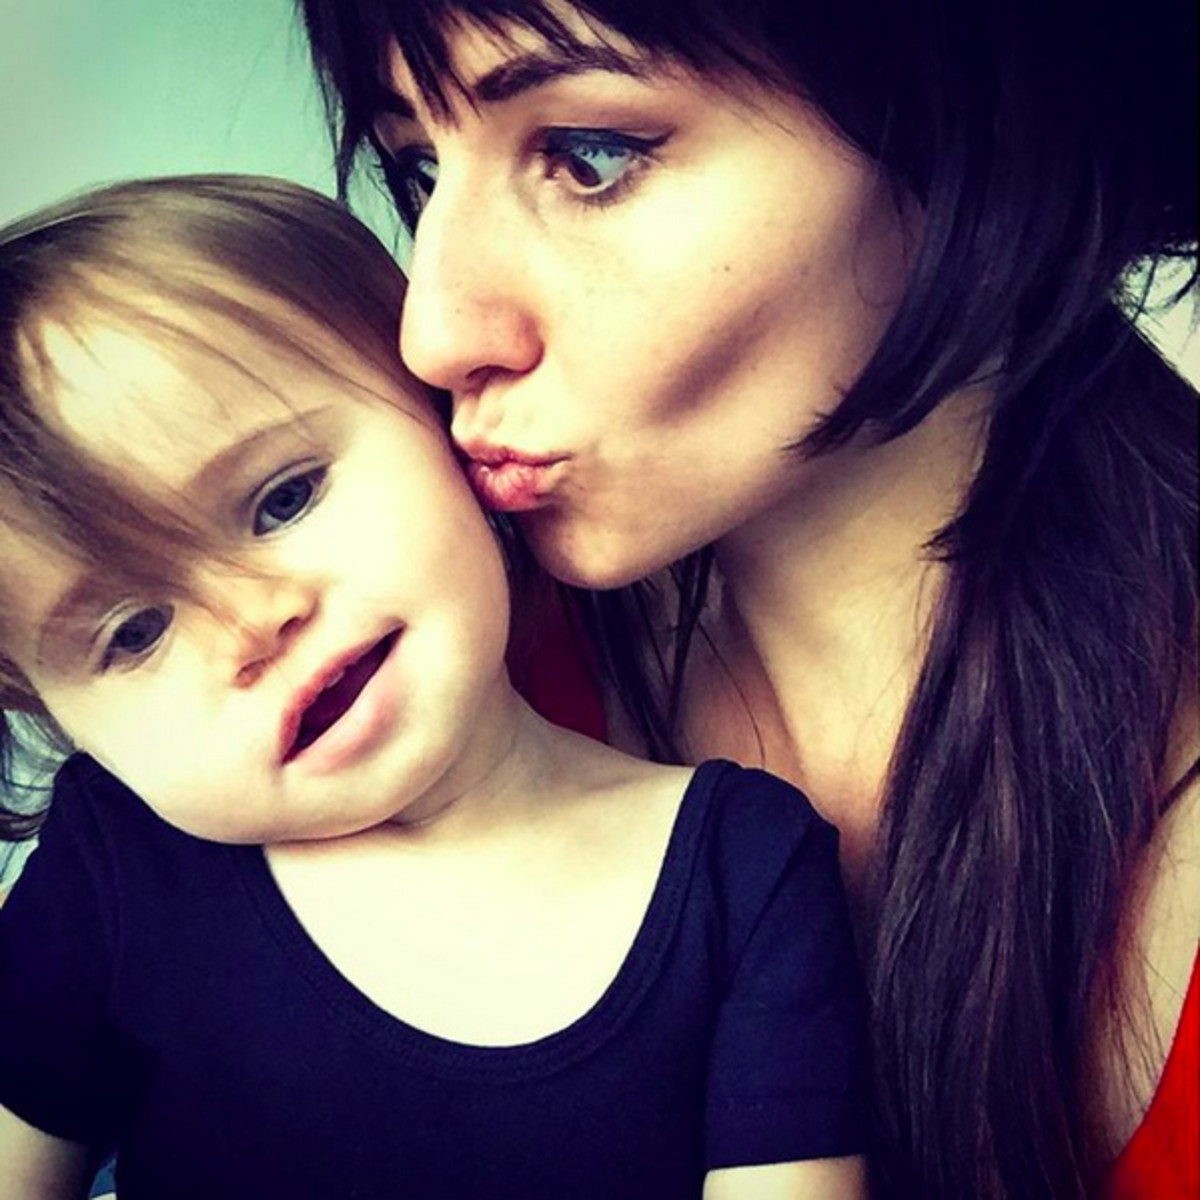 Singer Lights and daughter Rocket